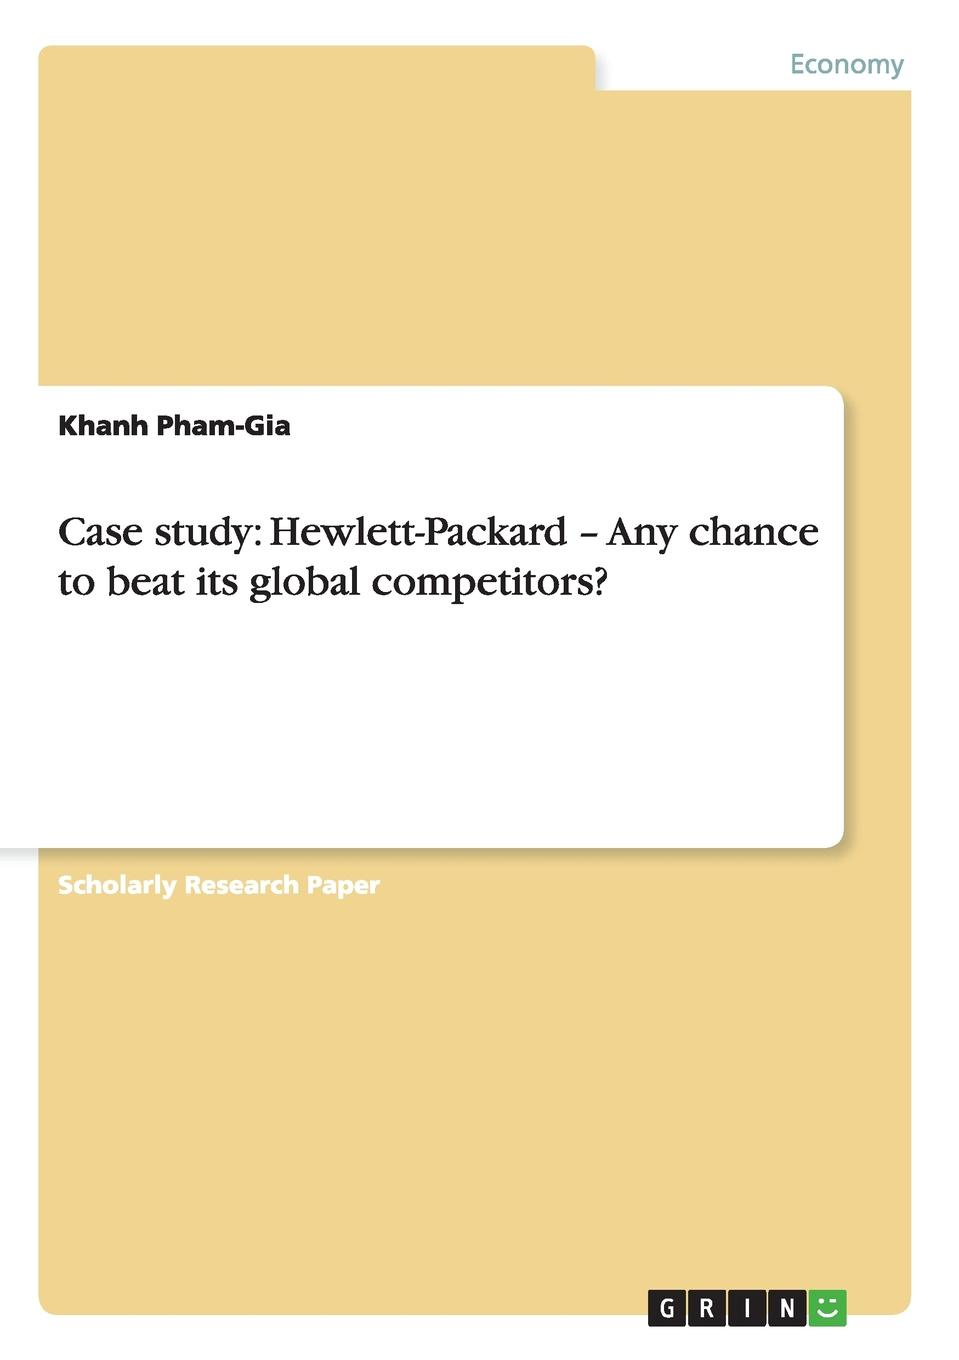 Khanh Pham-Gia Case study. Hewlett-Packard - Any chance to beat its global competitors. kathryn jones a amway forever the amazing story of a global business phenomenon